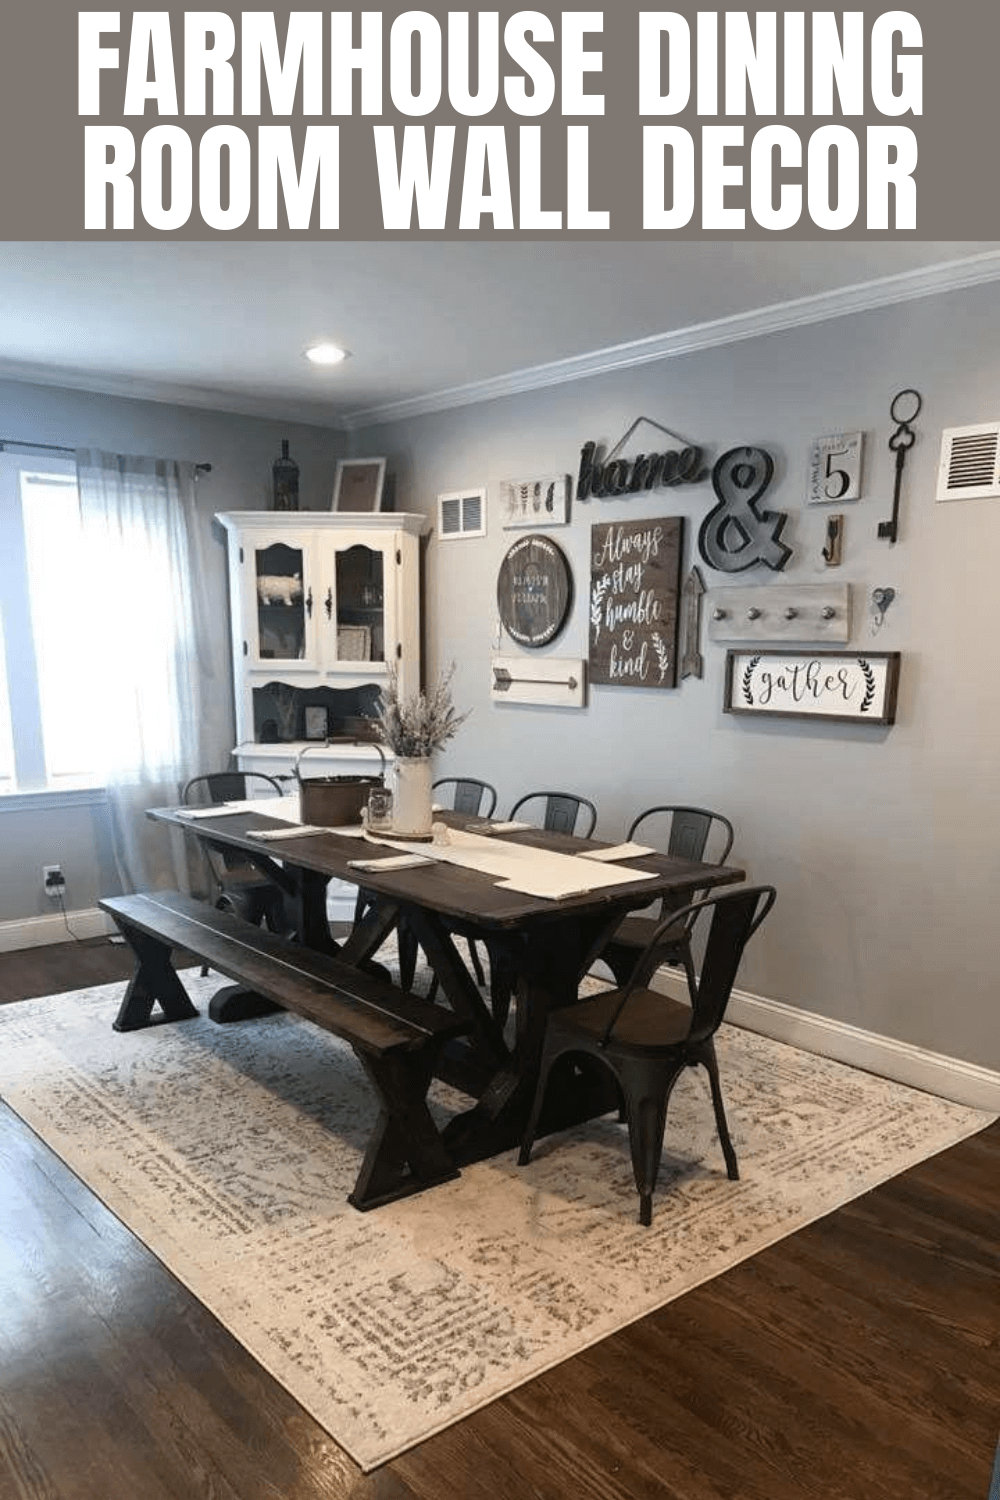 FARMHOUSE DINING ROOM WALL DECOR